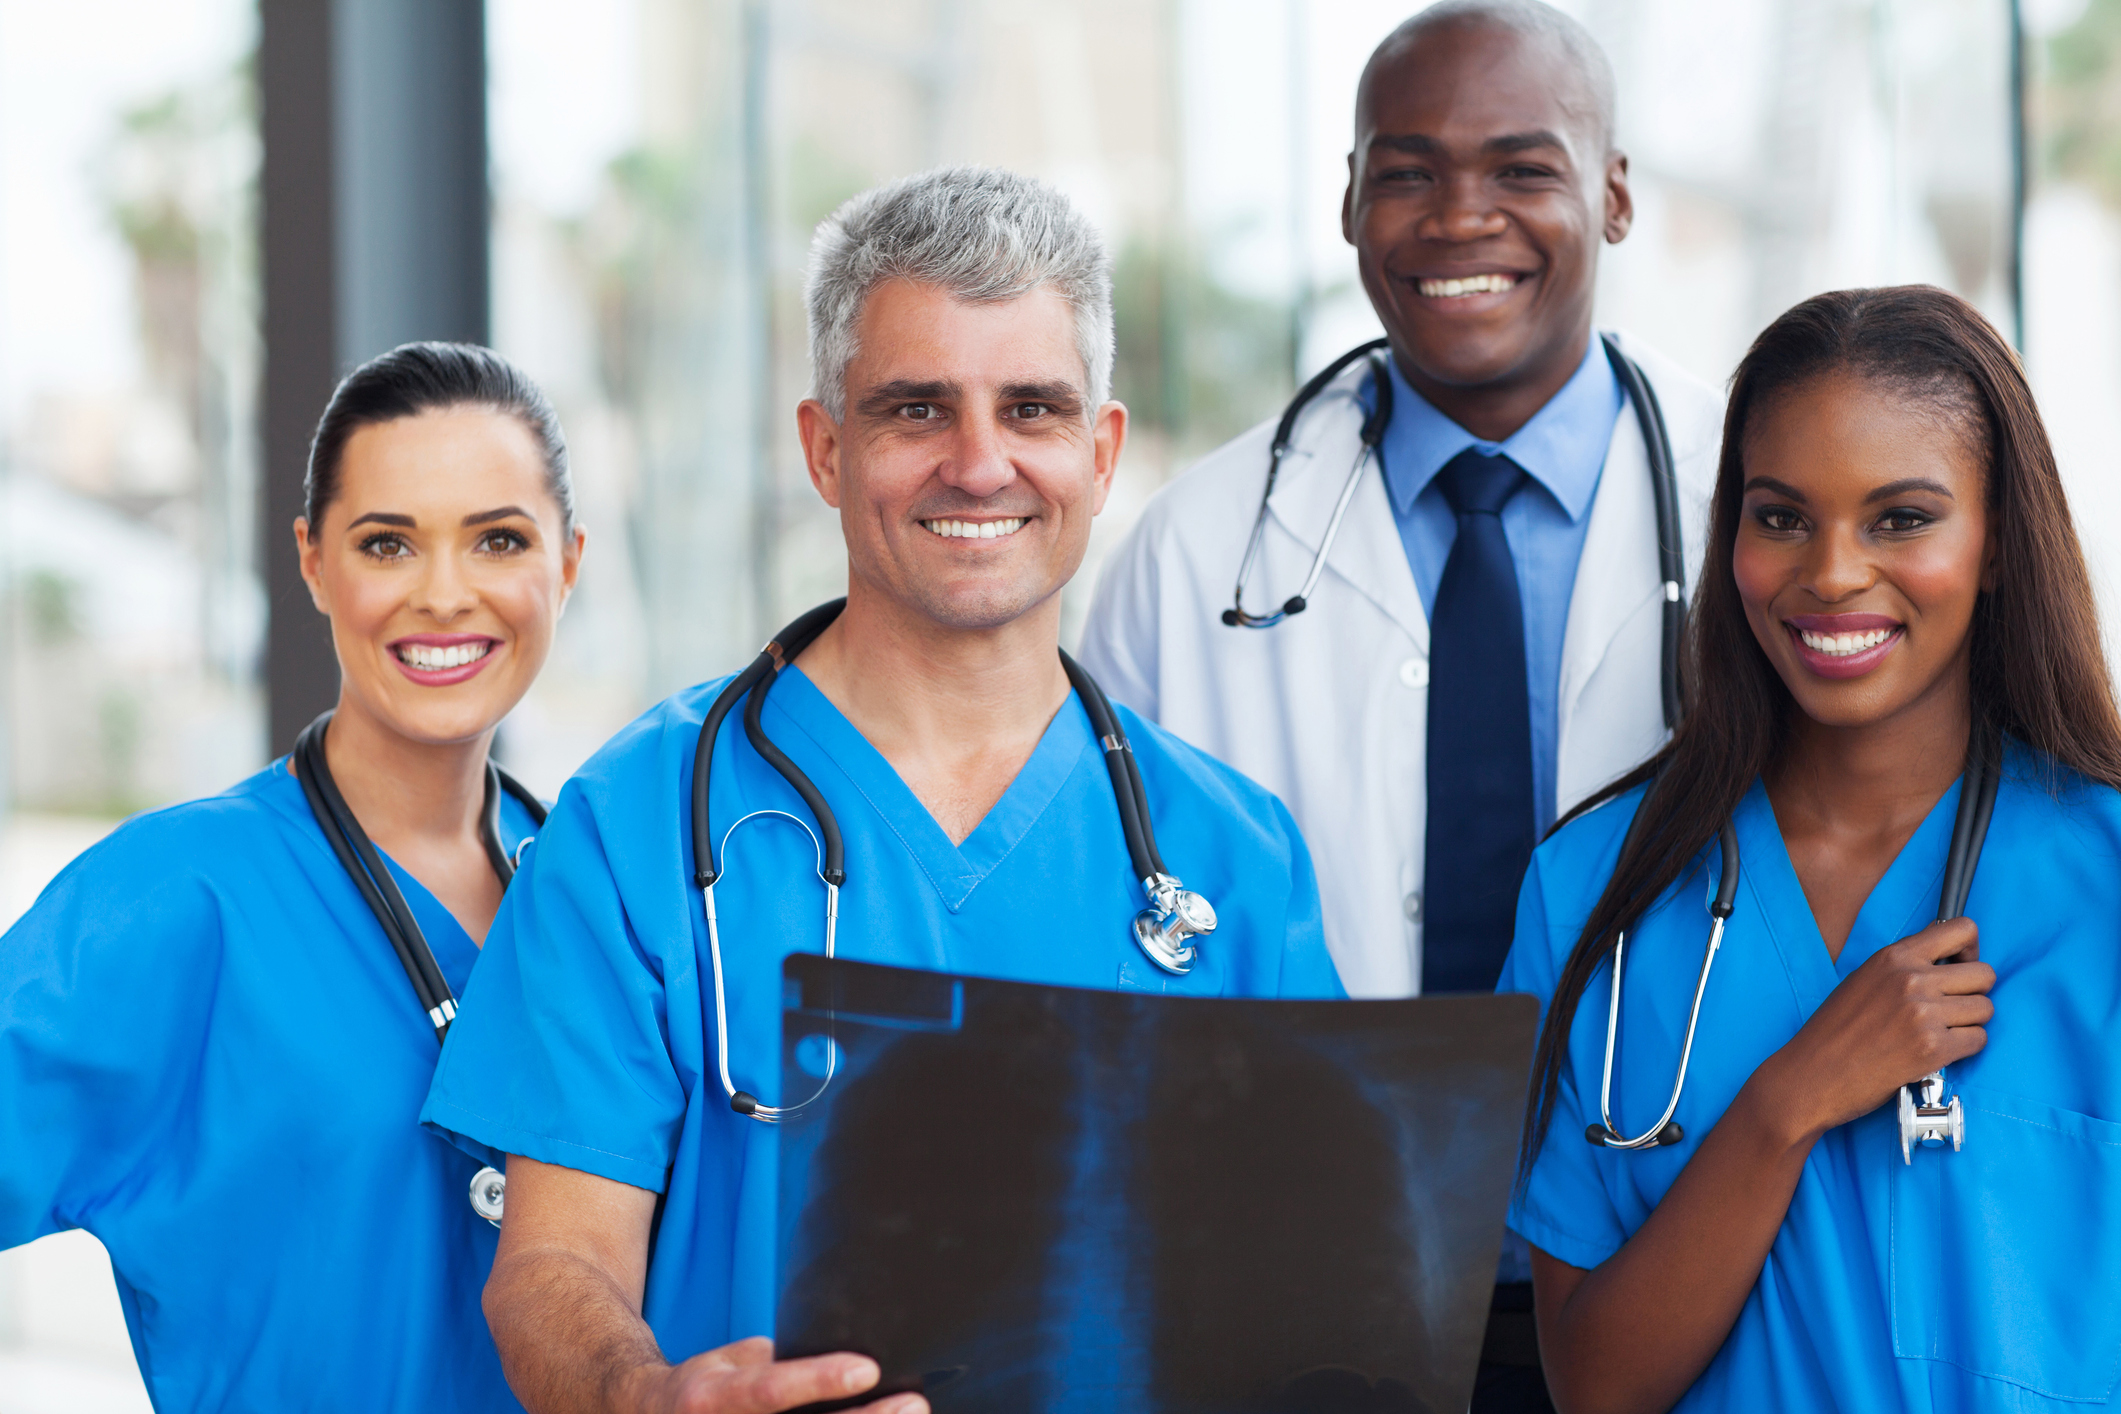 image of doctors and nurses